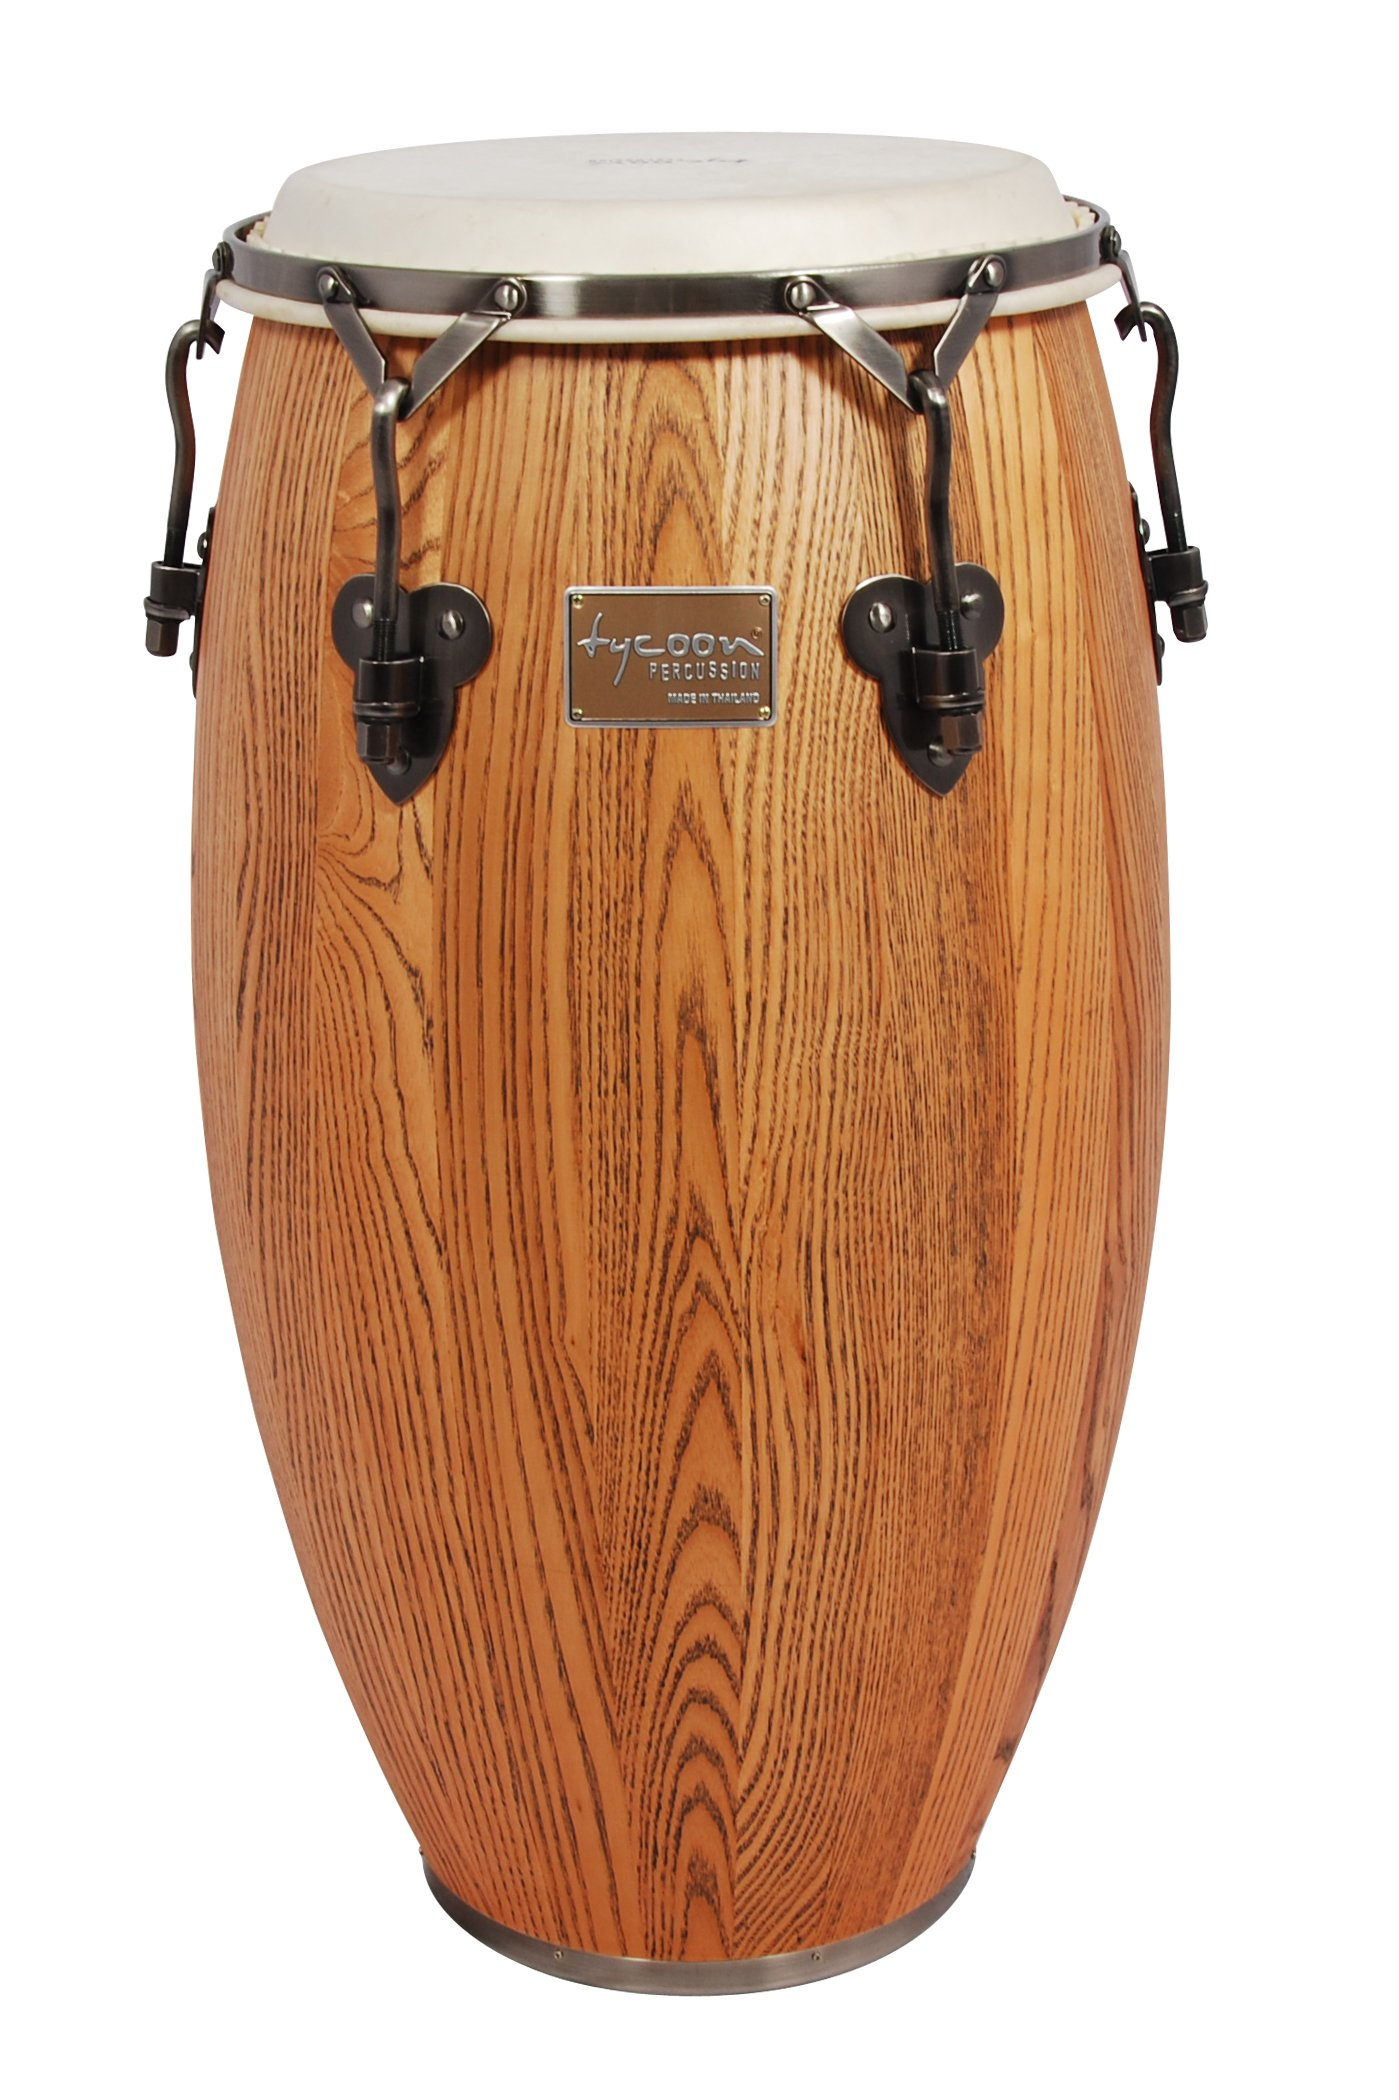 Tycoon Percussion 10 Inch Signature Grand Series Requinto With Single Stand by Tycoon Percussion